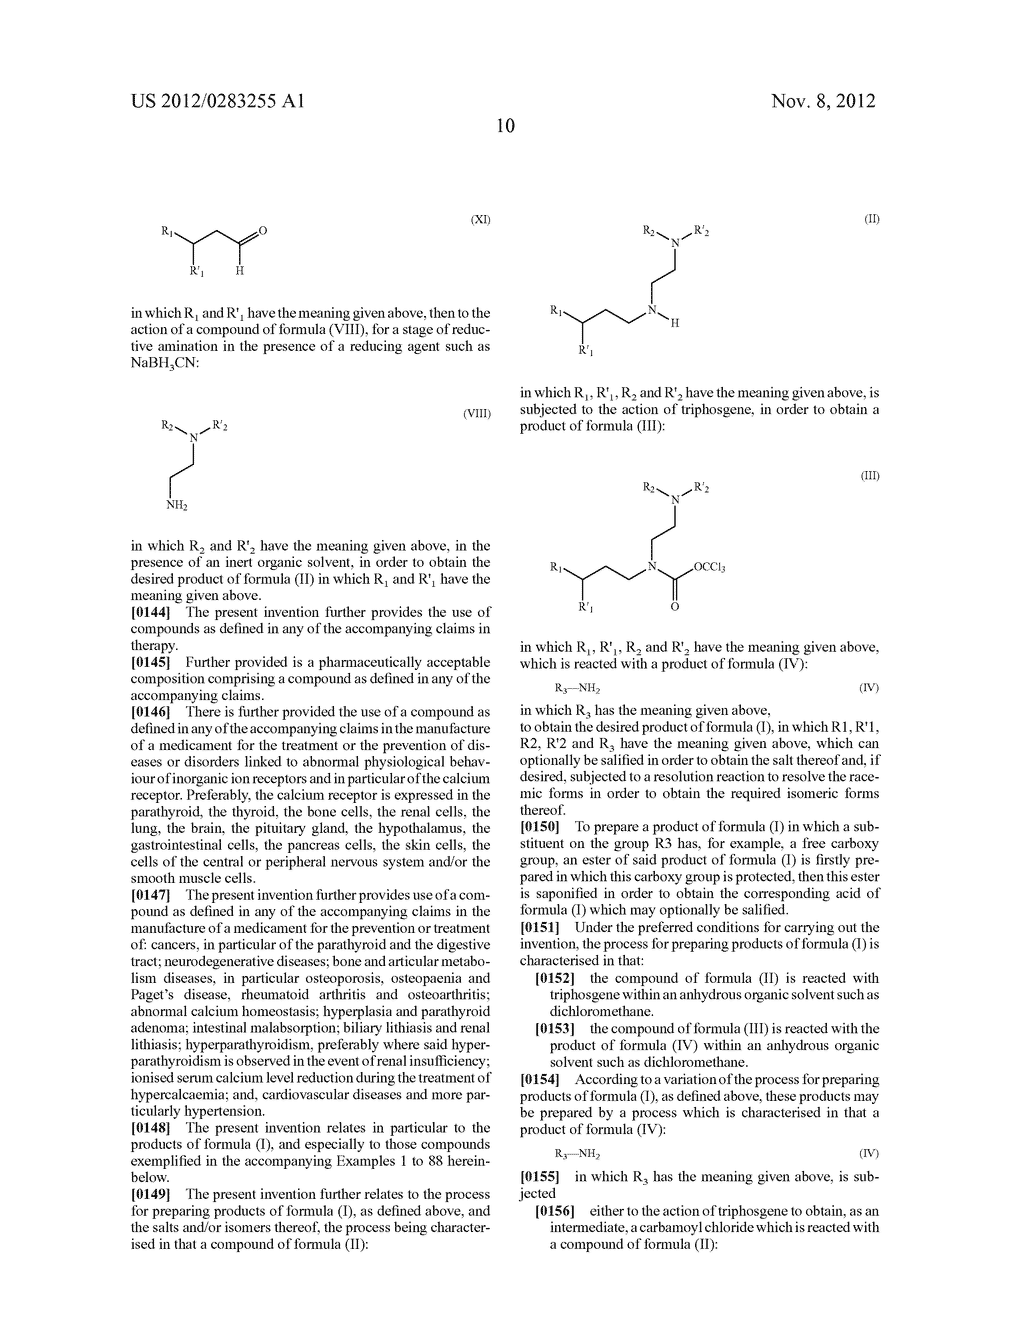 UREA DERIVATIVES, METHODS FOR THEIR MANUFACTURE, AND USES THEREFOR - diagram, schematic, and image 11